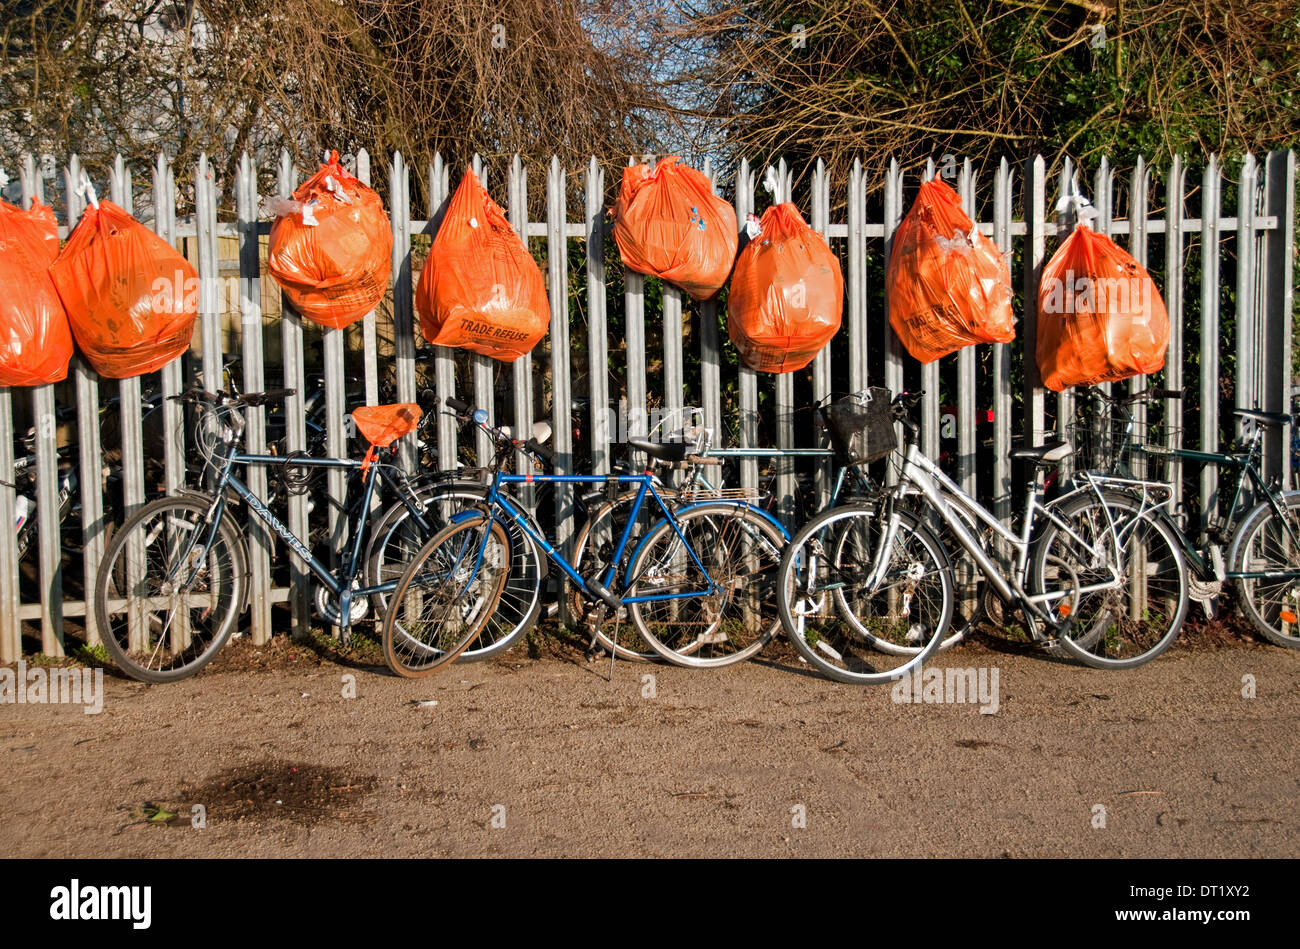 Rubbish Bags Fence and bicycles - Stock Image